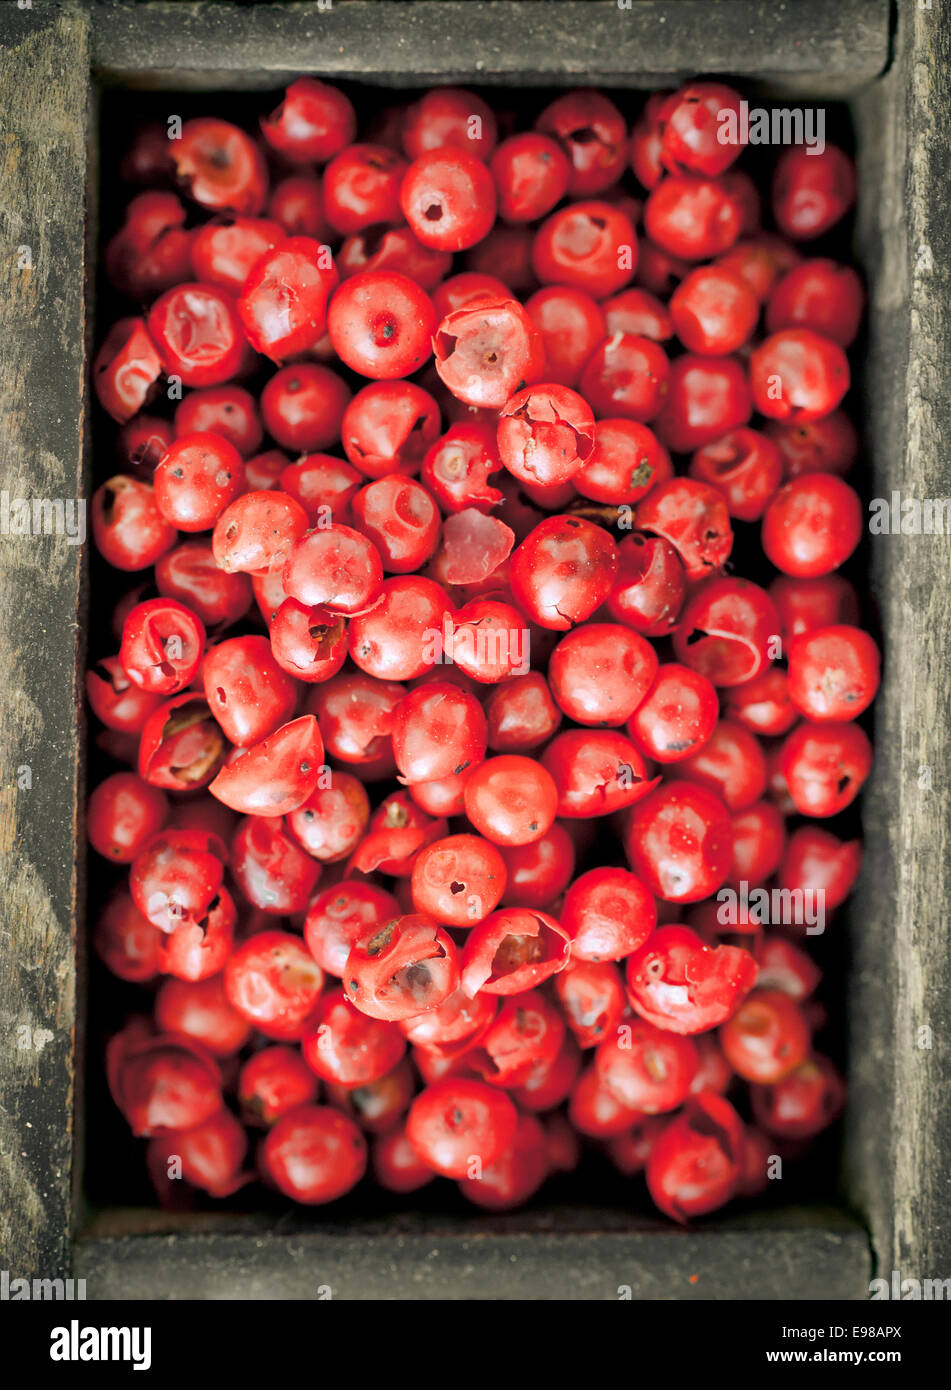 Organic Red Food Colouring Stock Photos & Organic Red Food Colouring ...